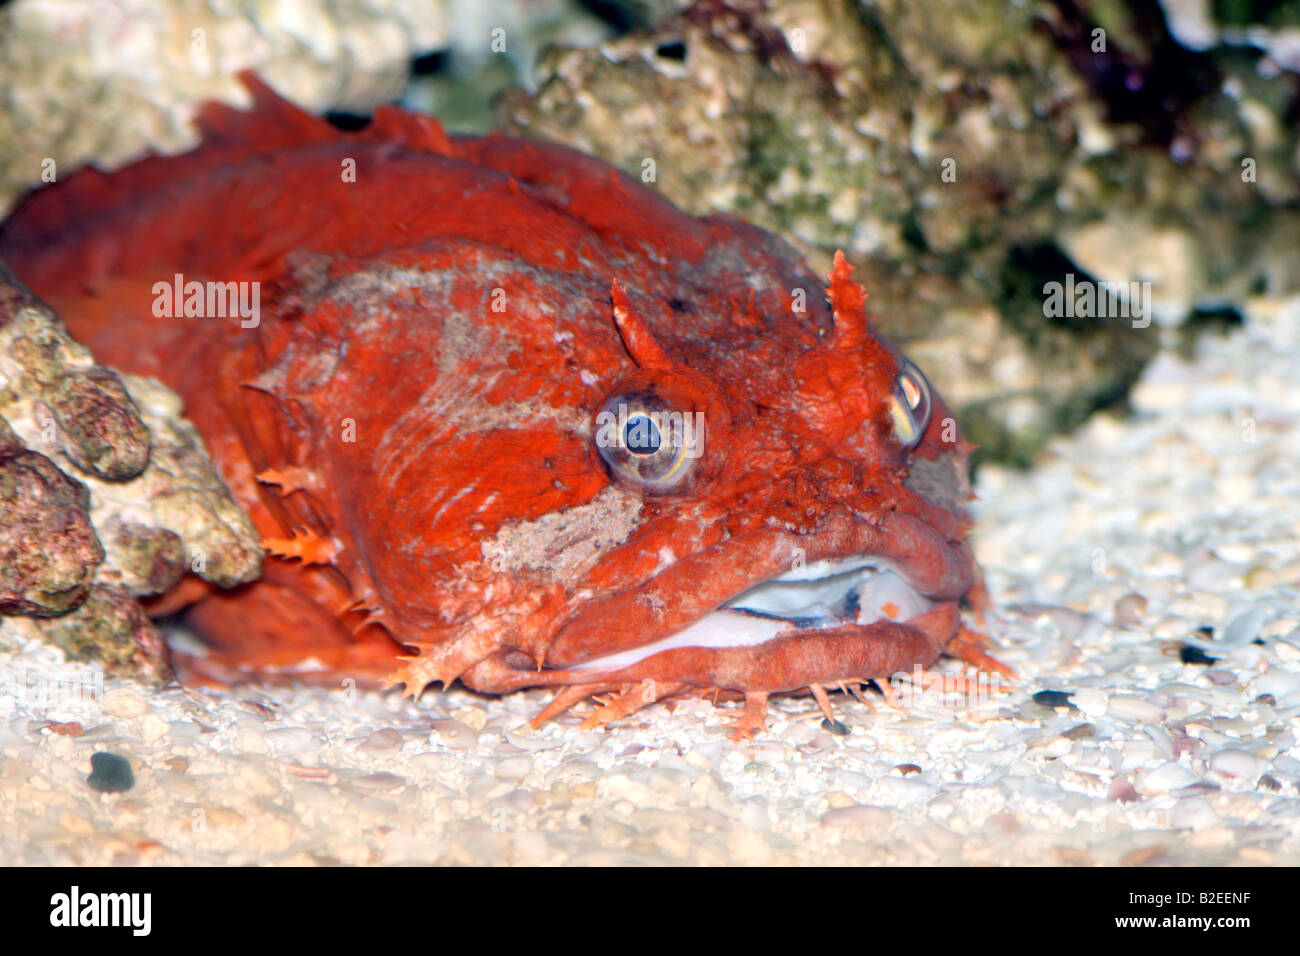 Ugly Red Fish Stock Photos & Ugly Red Fish Stock Images - Alamy